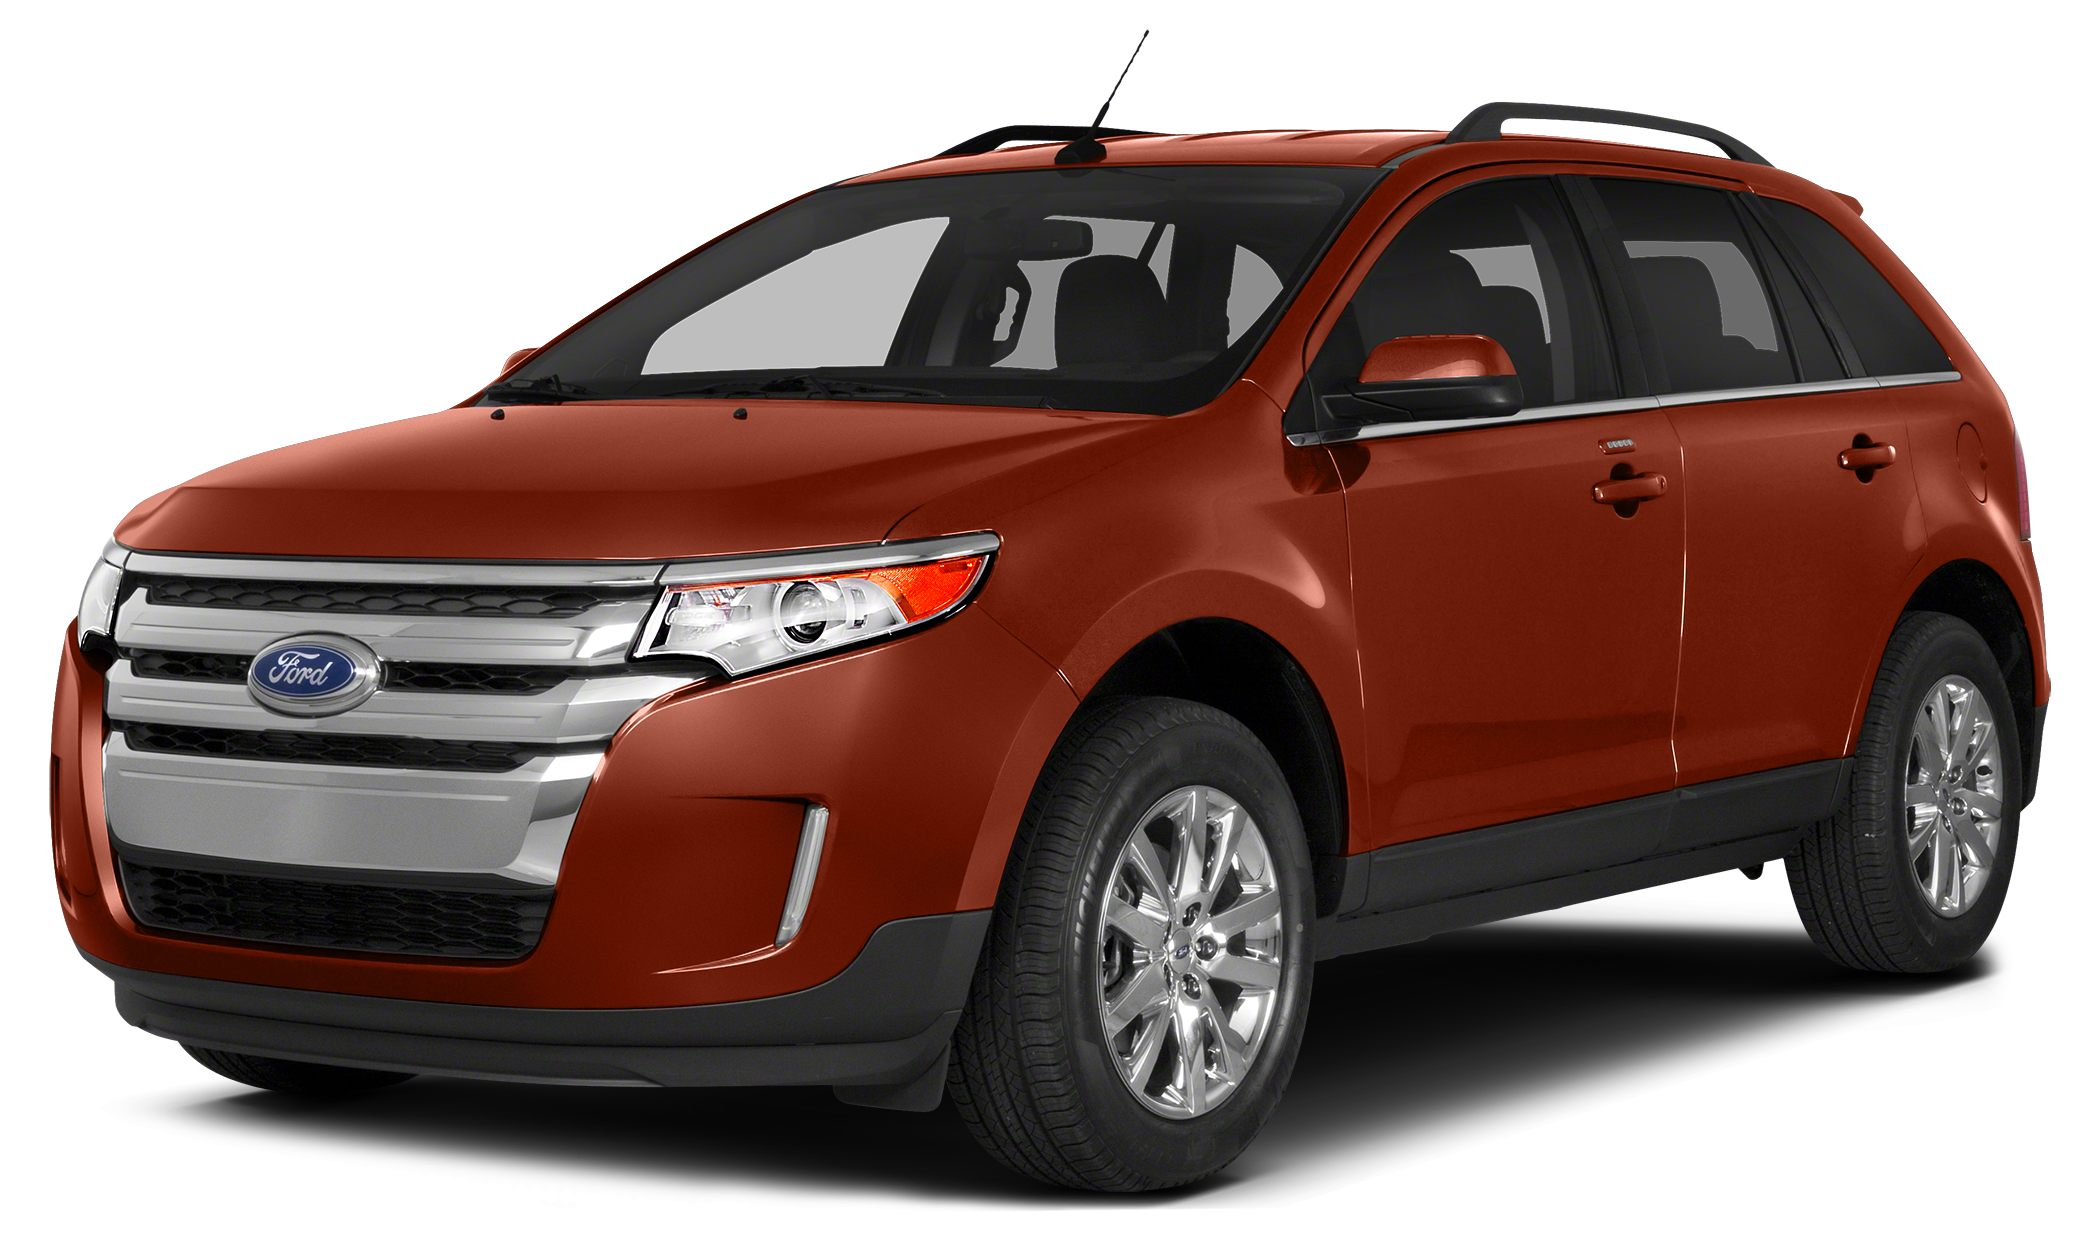 2014 Ford Edge SEL ONE OWNER LEATHER AND LOADED FORD CERTIFIED Pre-Owned means you get a 1-year